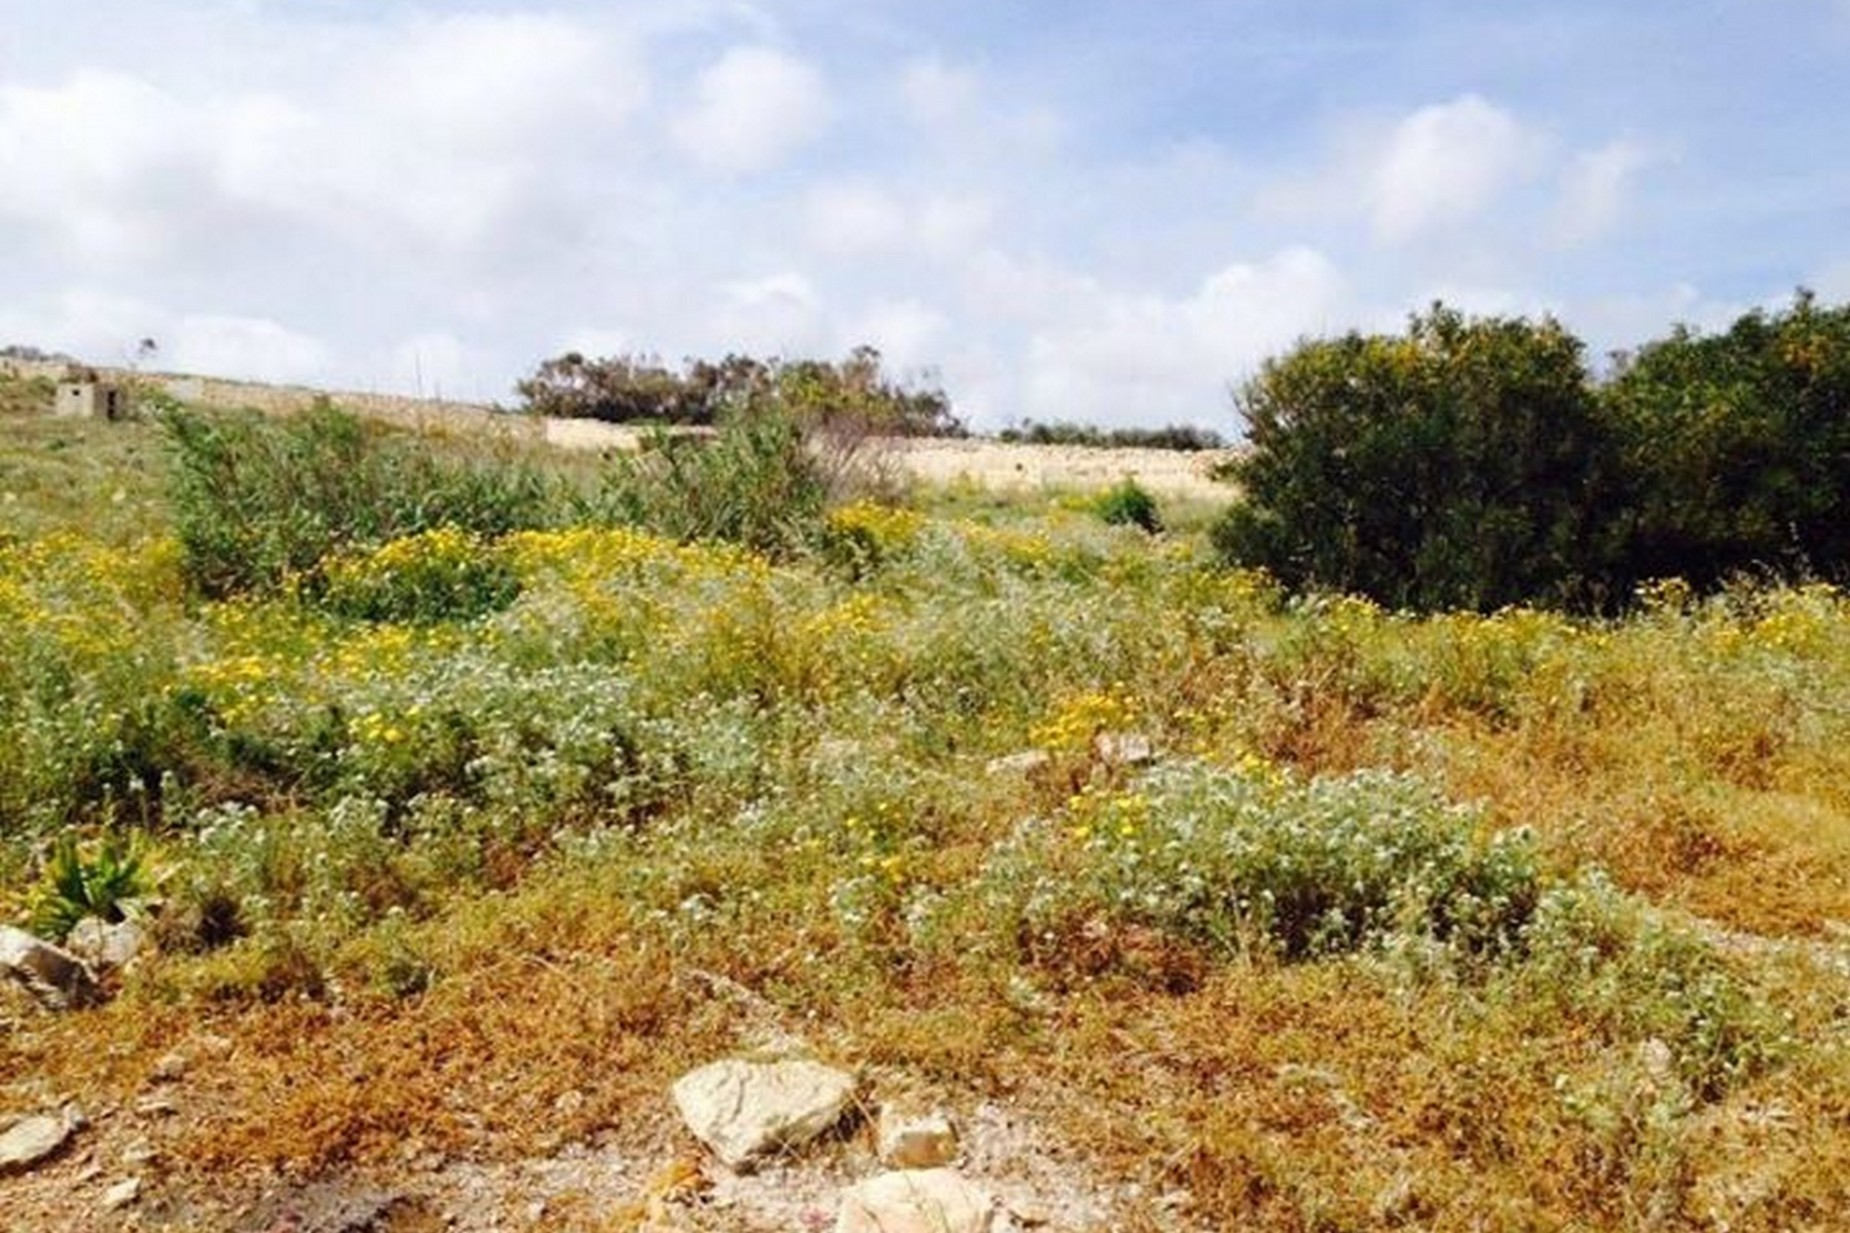 0 bed Site Residential For Sale in Zurrieq, Zurrieq - thumb 6